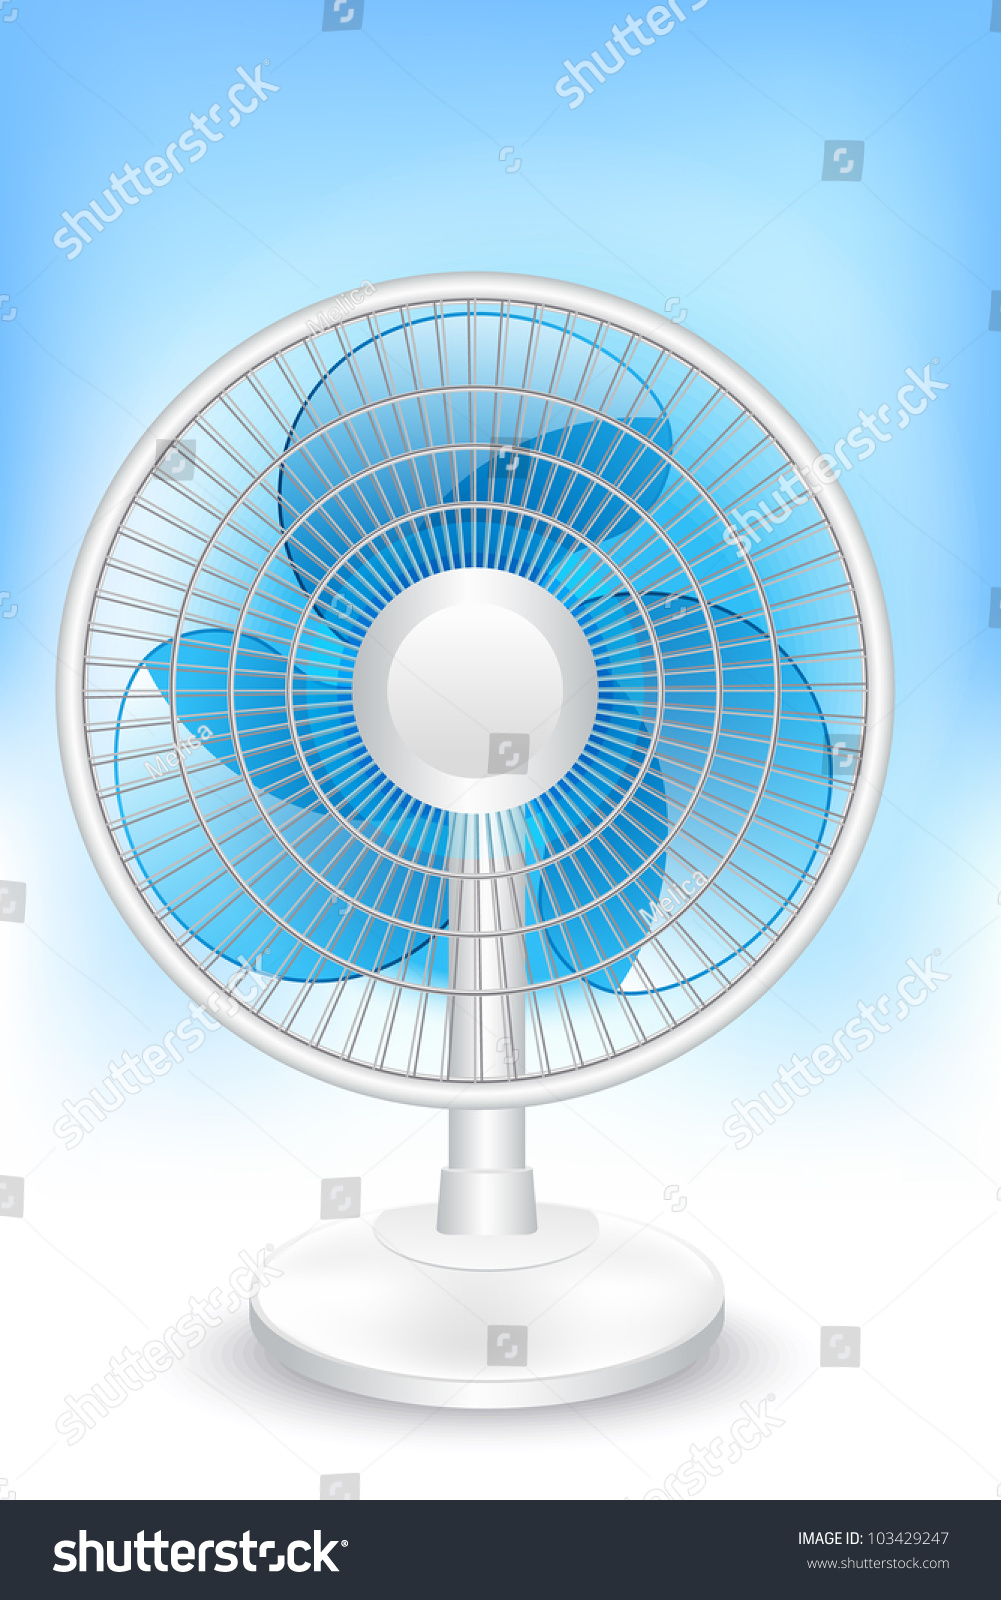 Electric Table Fan Illustration Stock Vector Royalty Free Diagram All Picture